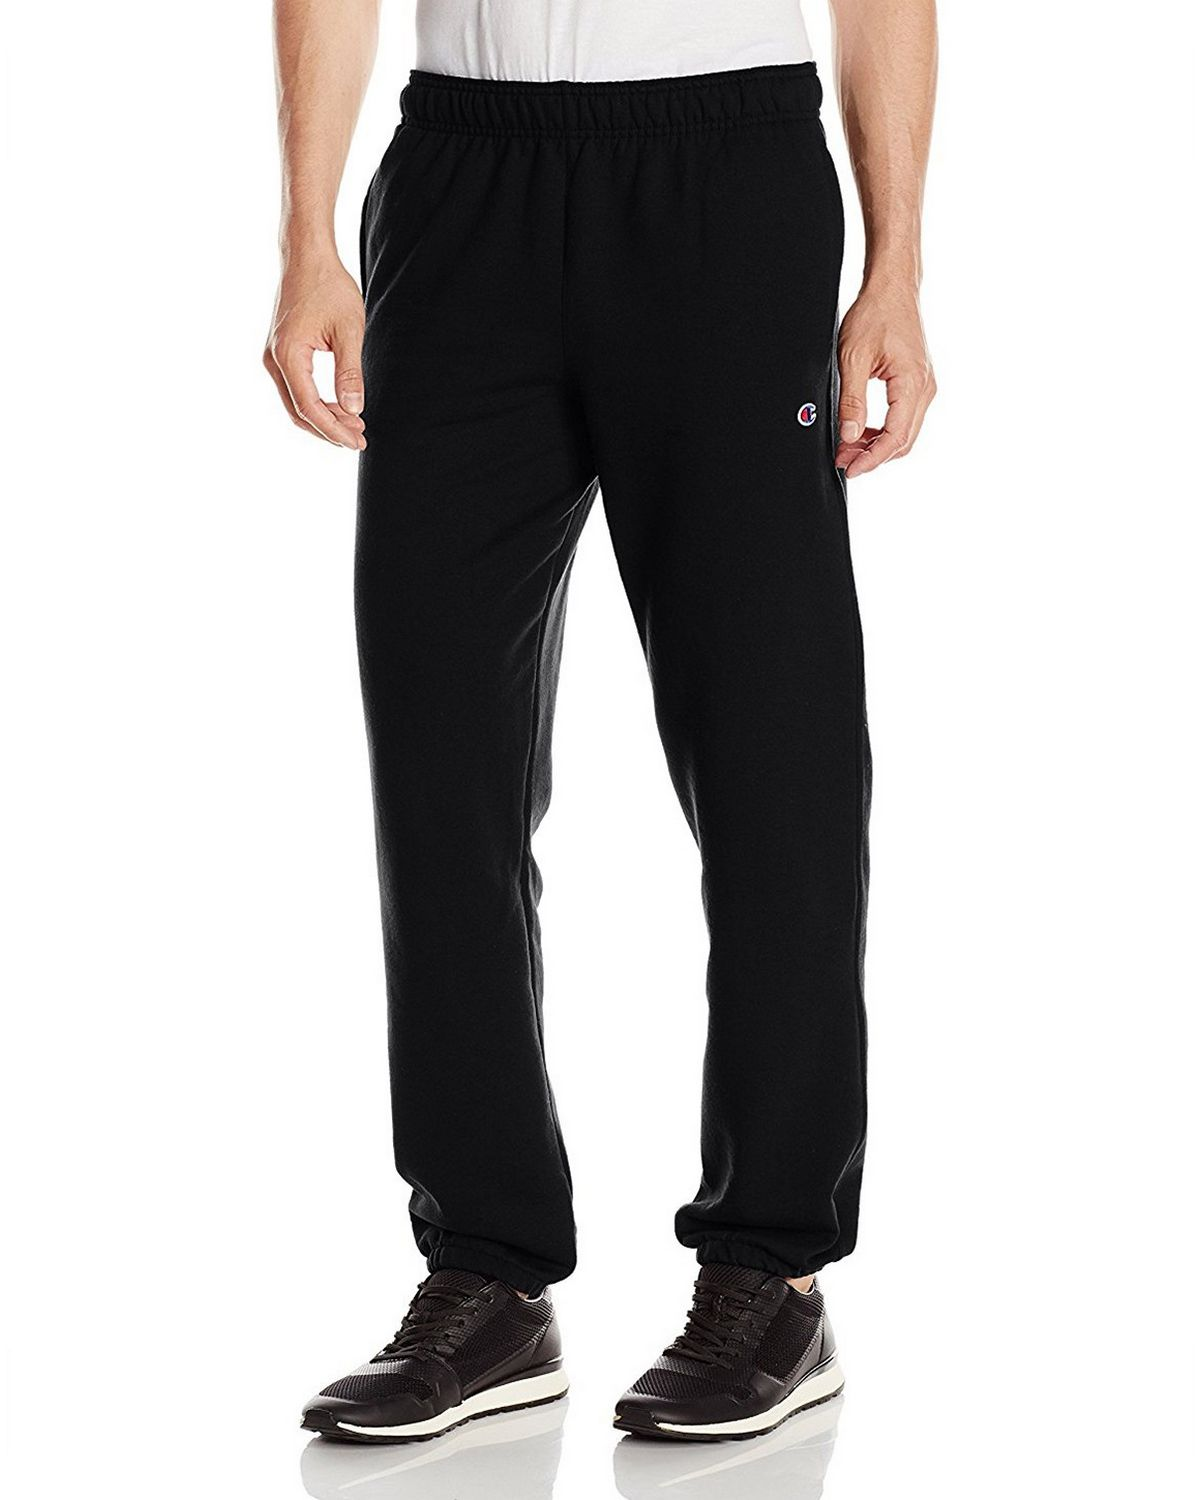 Champion Men's Powerblend Relaxed Bottom Fleece Pant, Black, S P0894